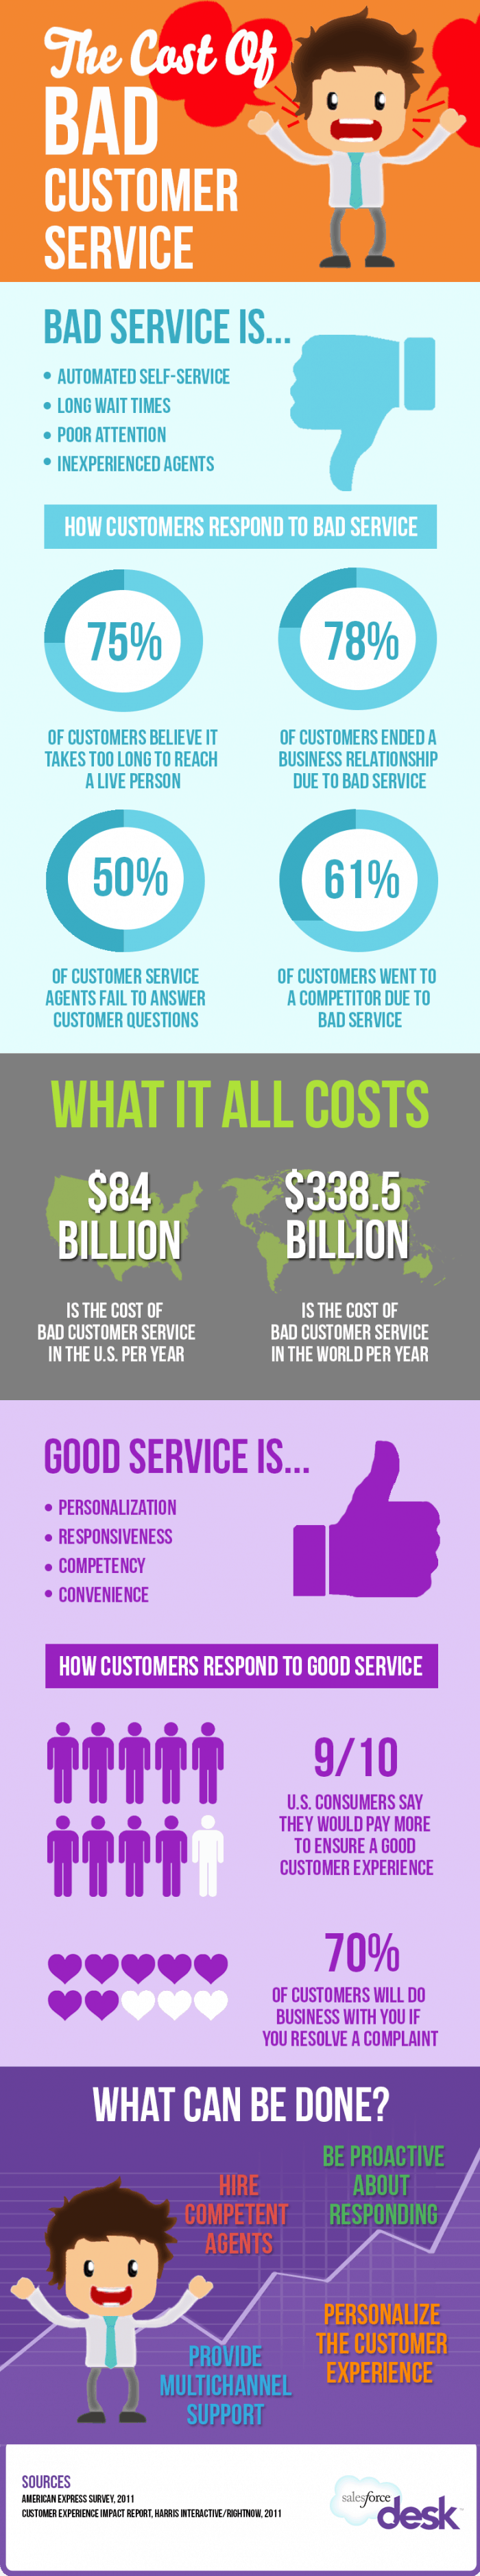 Cost of Bad Customer Service Infographic